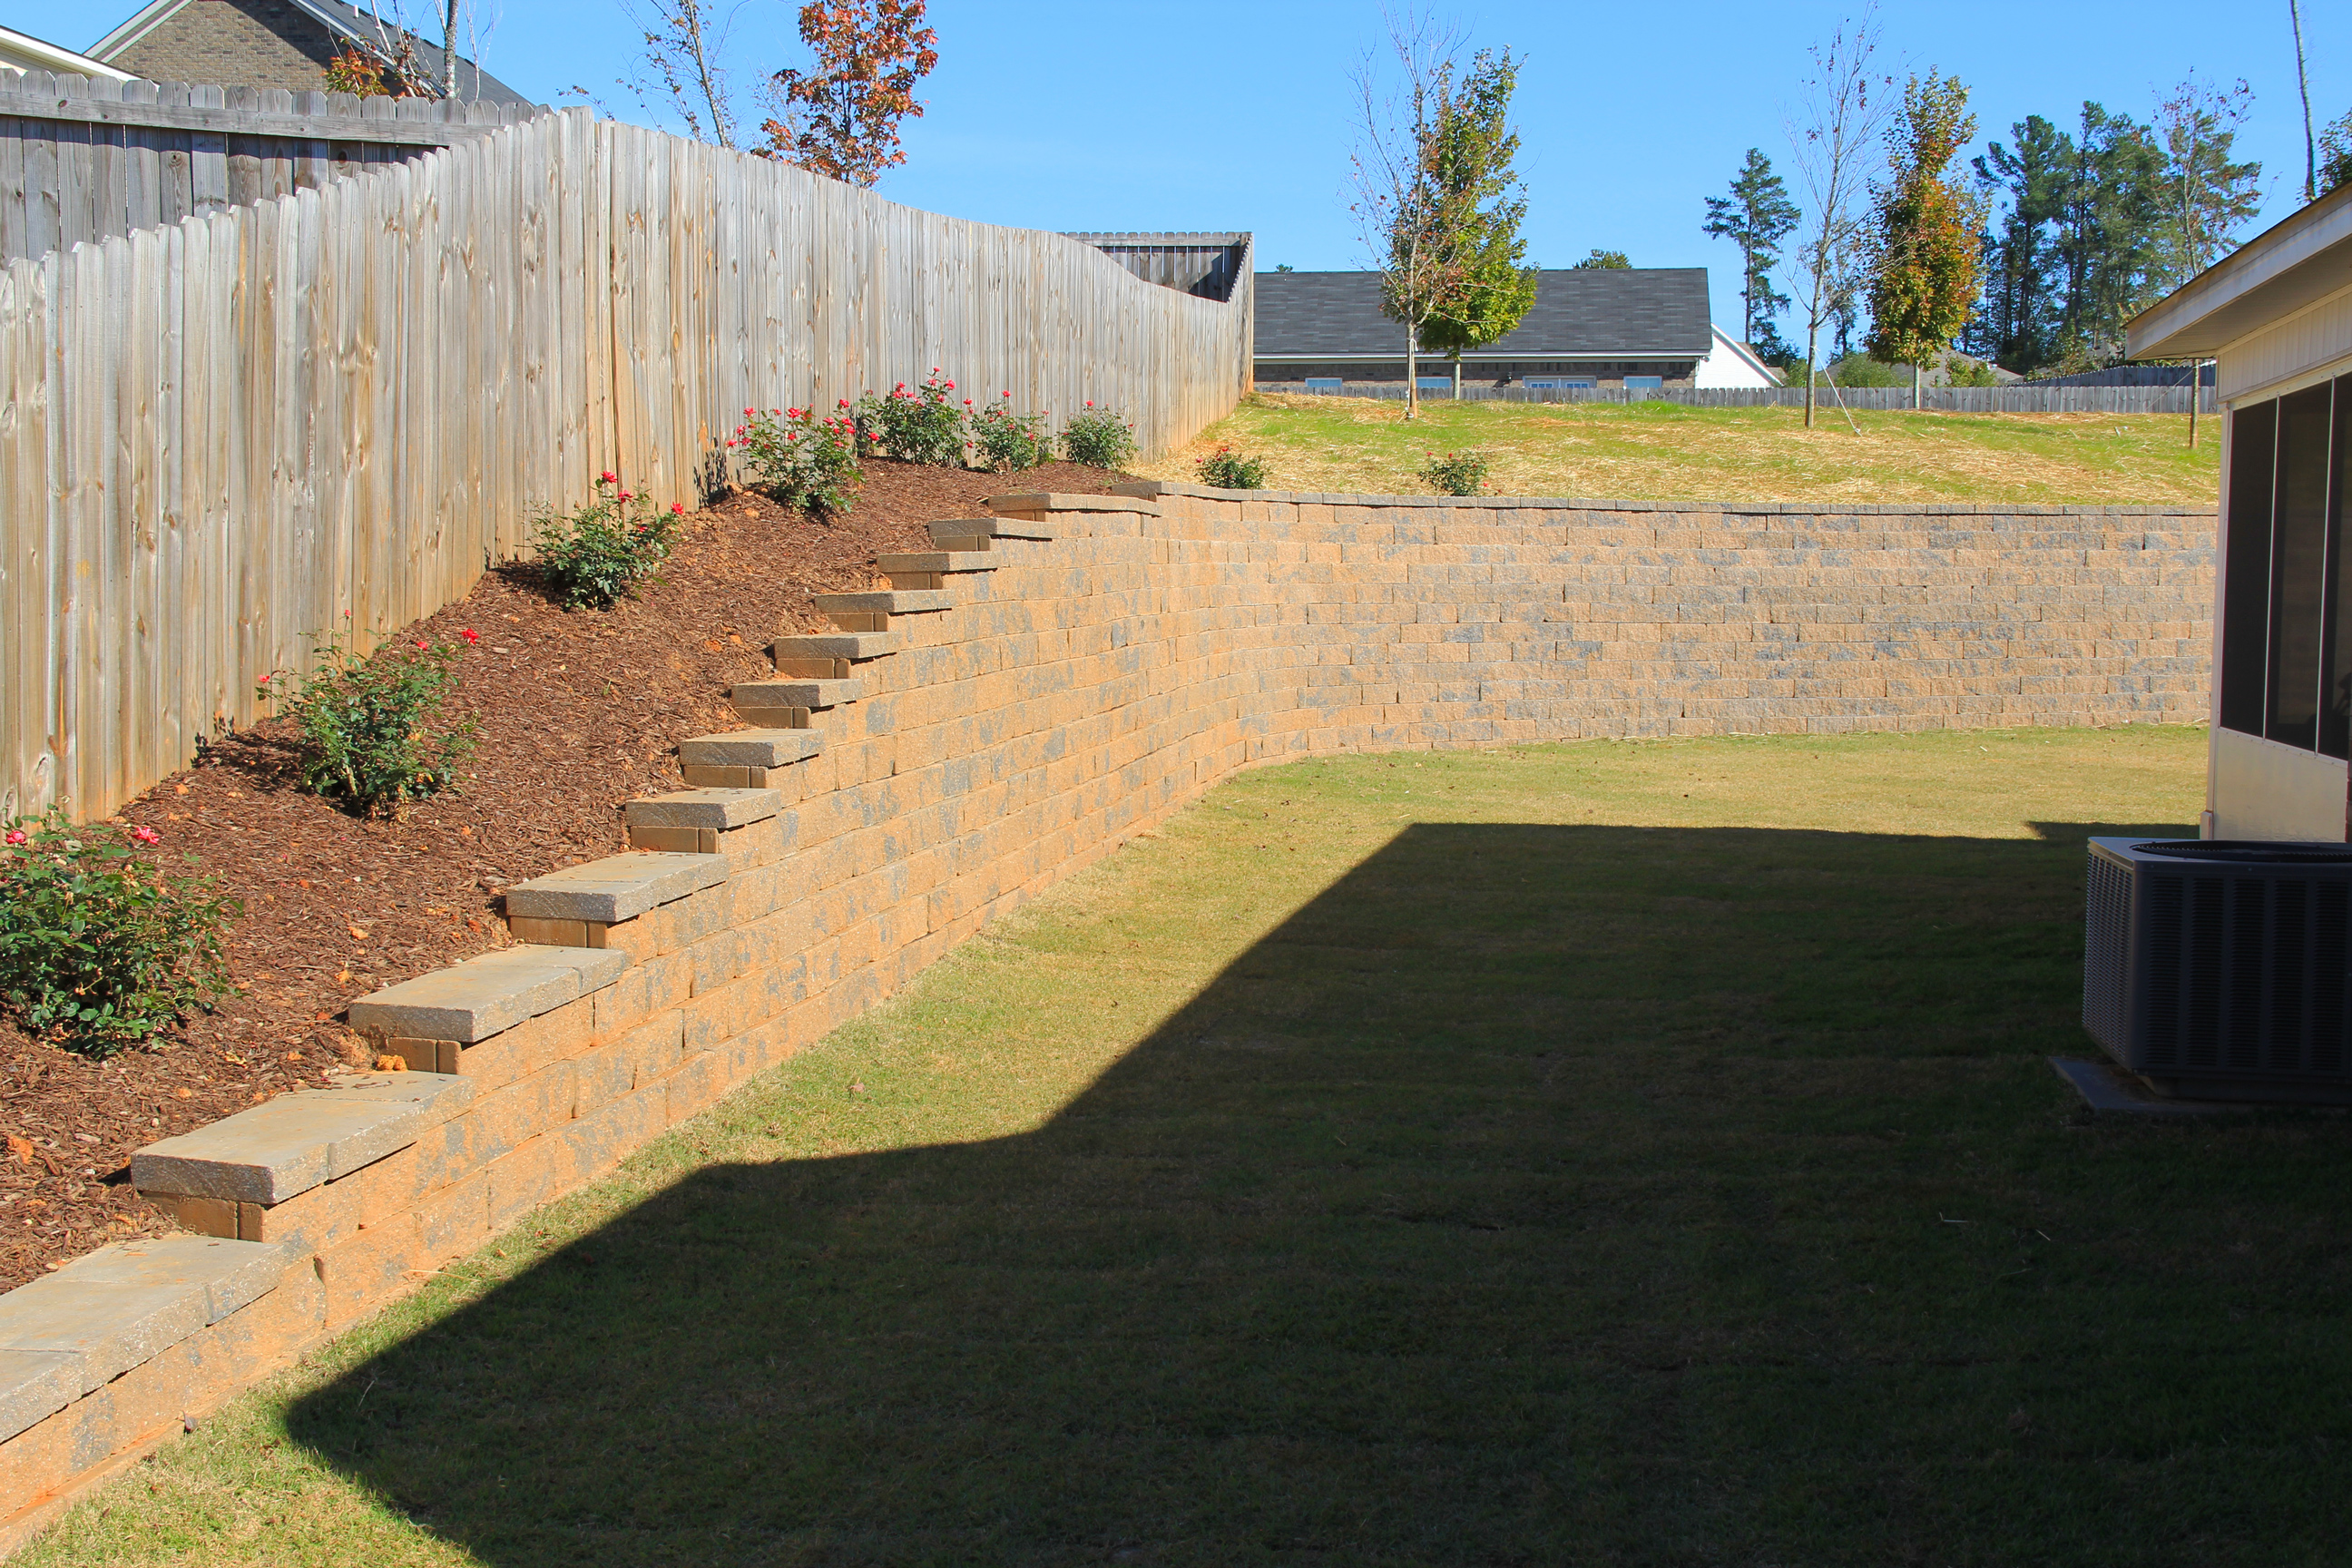 Erosion Control Wall Installed - Software Help